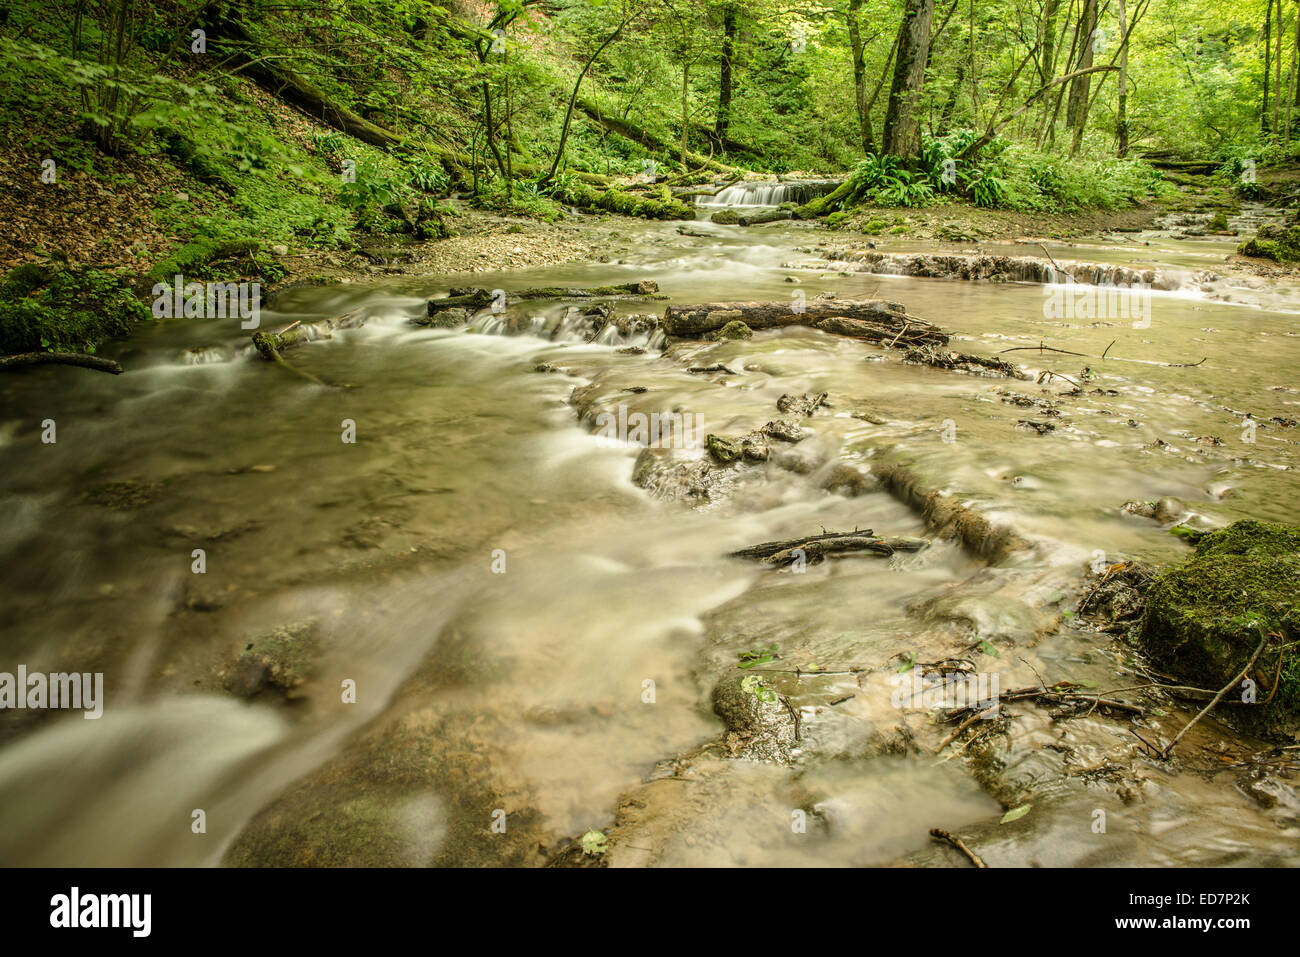 Stream in a green forest of the swabian alb in Germany - Stock Image